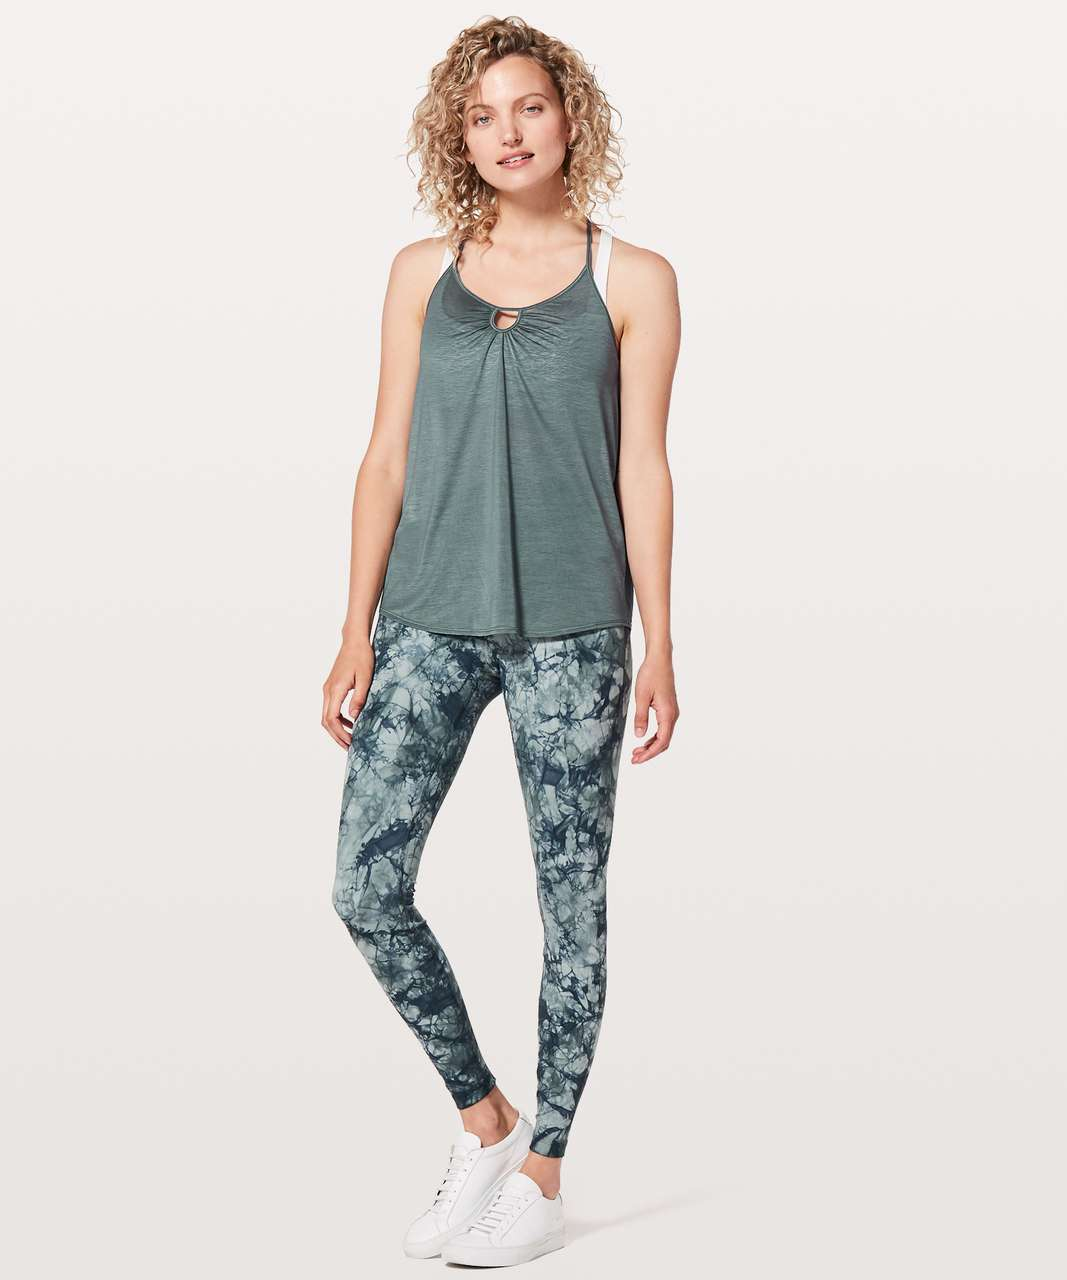 Lululemon Tighten Up Tank - Sea Steel